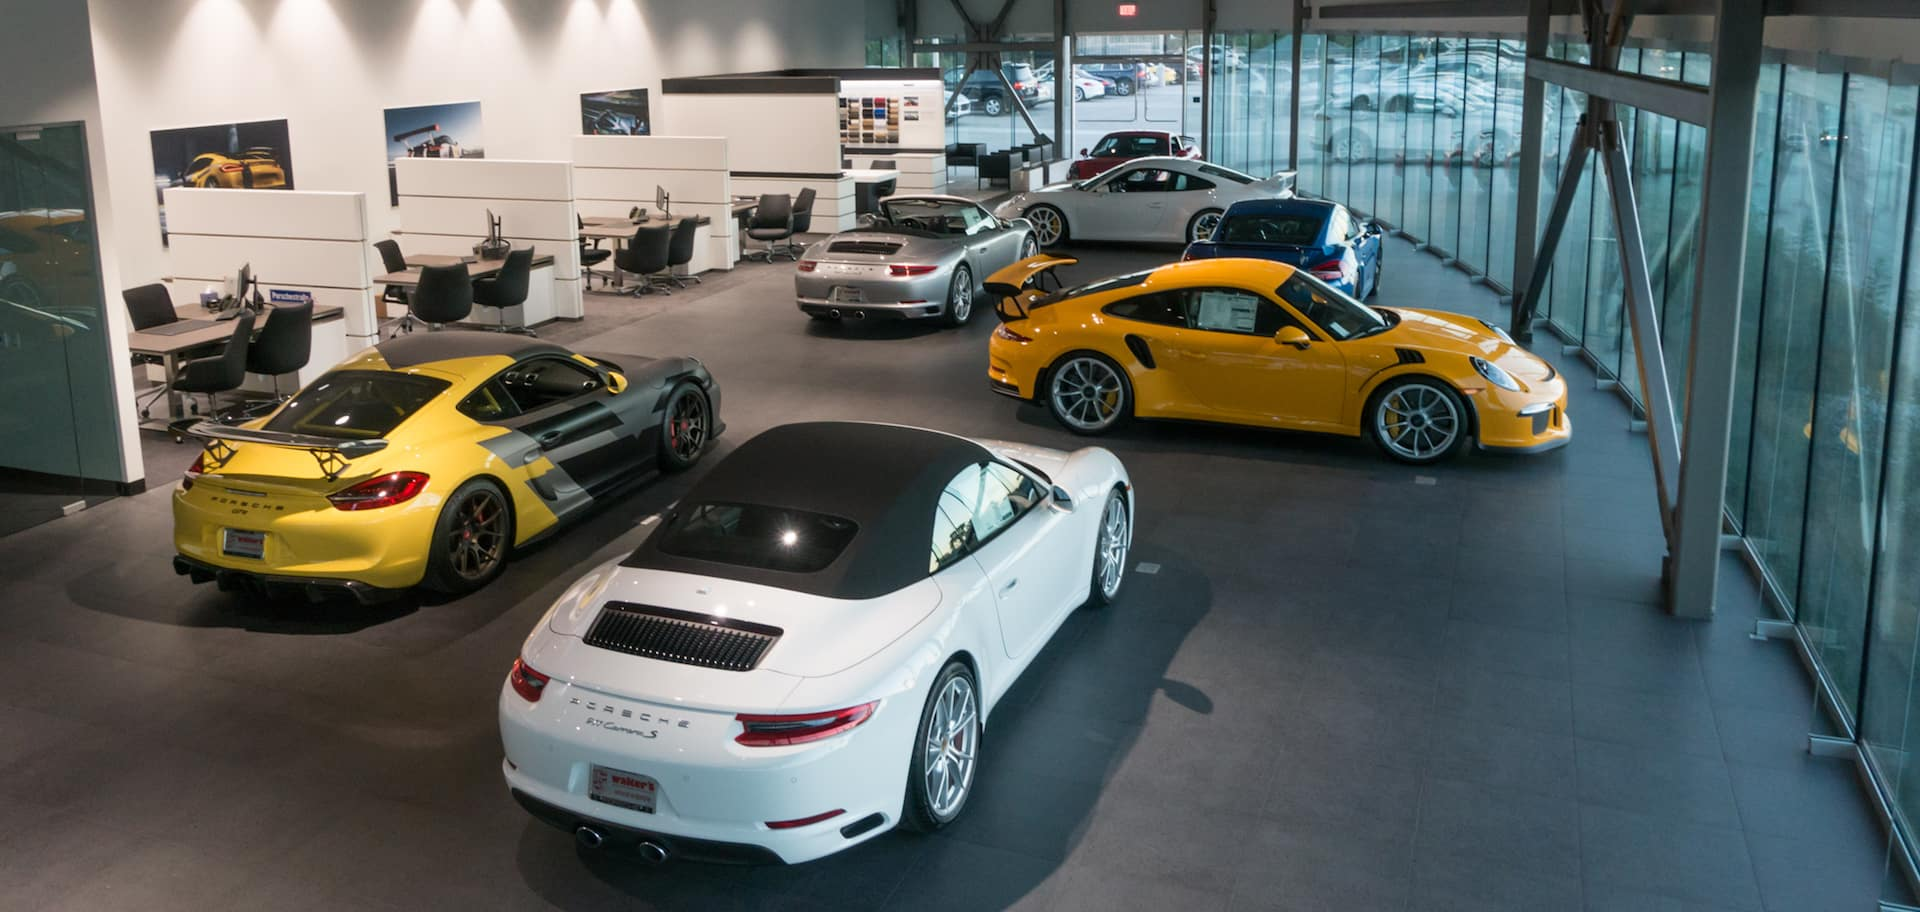 Porsche Riverside showroom